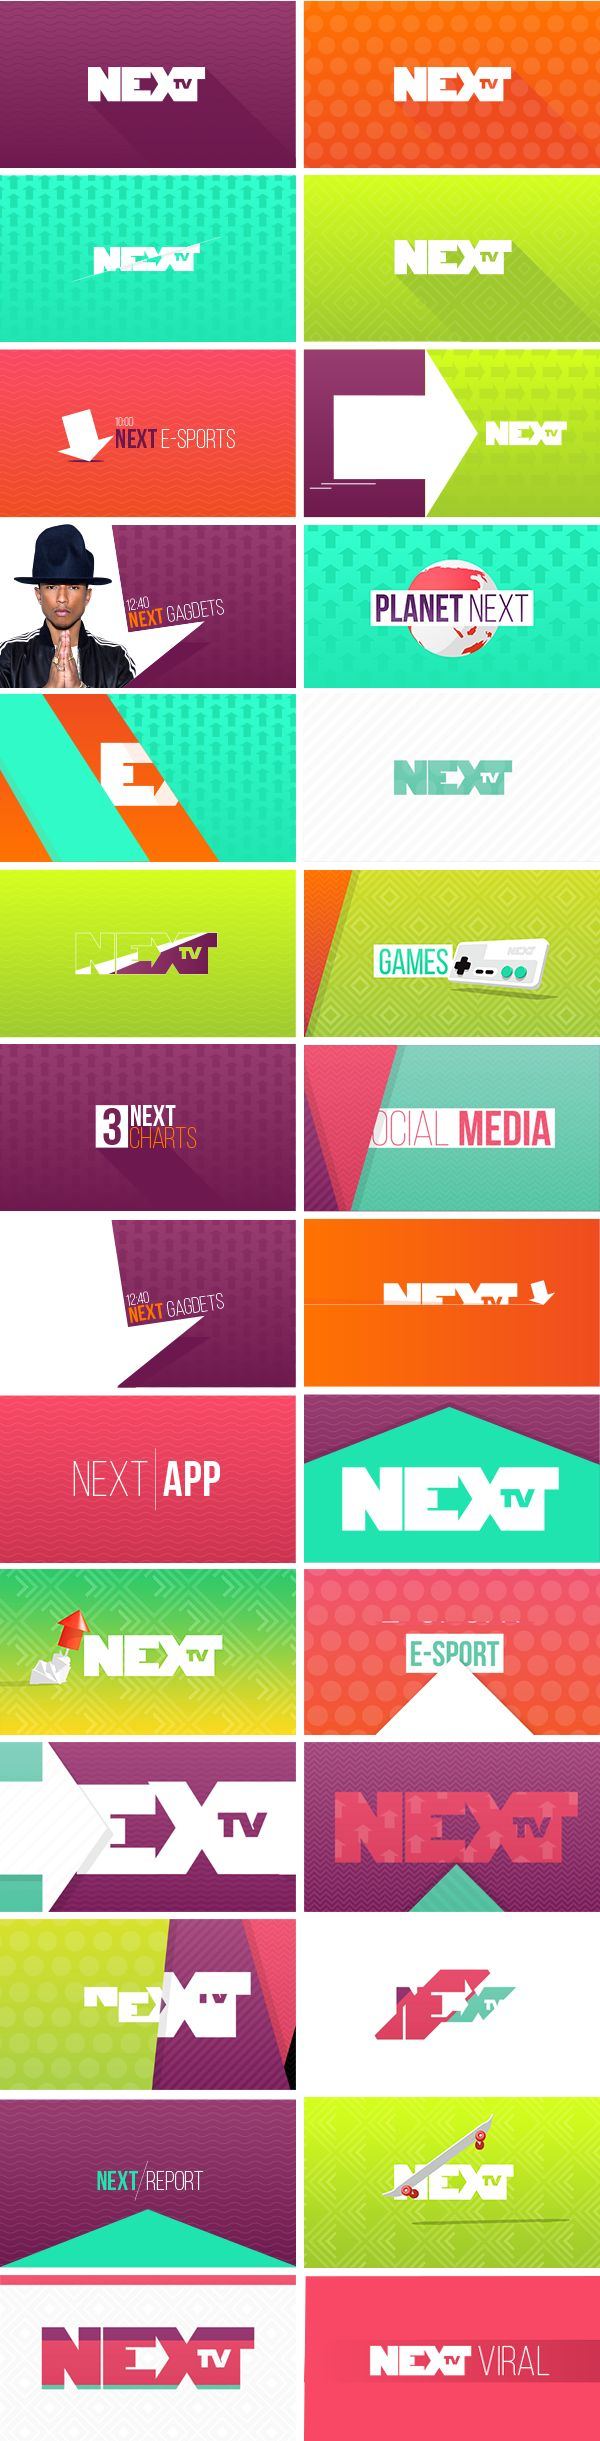 NEXT TV - Branding on Behance